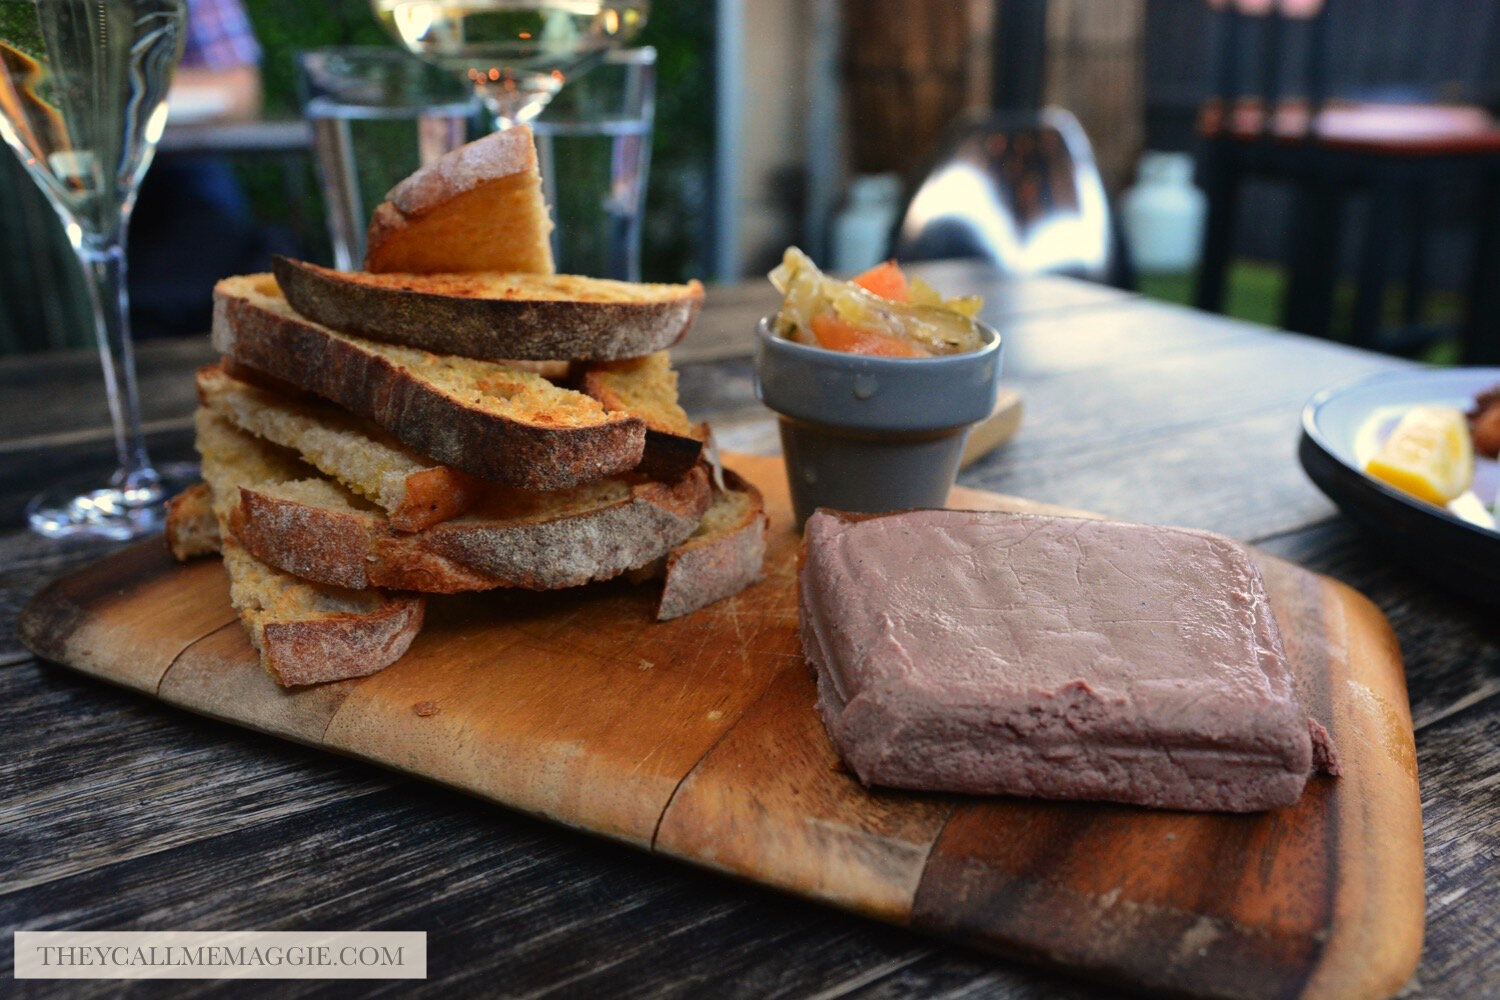 pate-and-bread.jpg